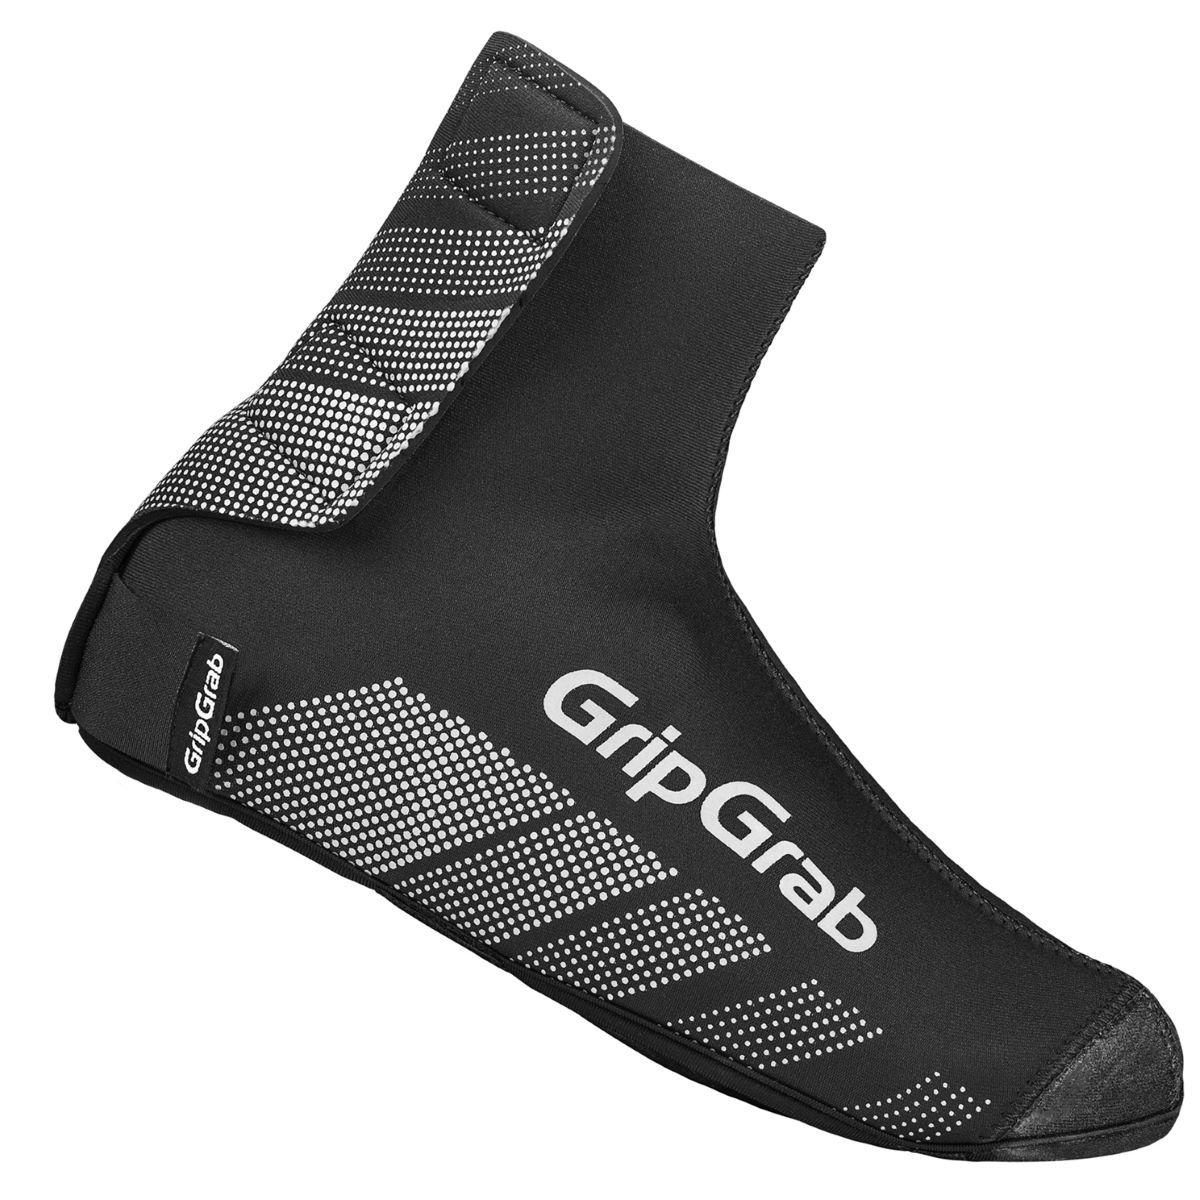 GripGrab GripGrab Ride Winter Overshoes   Overshoes